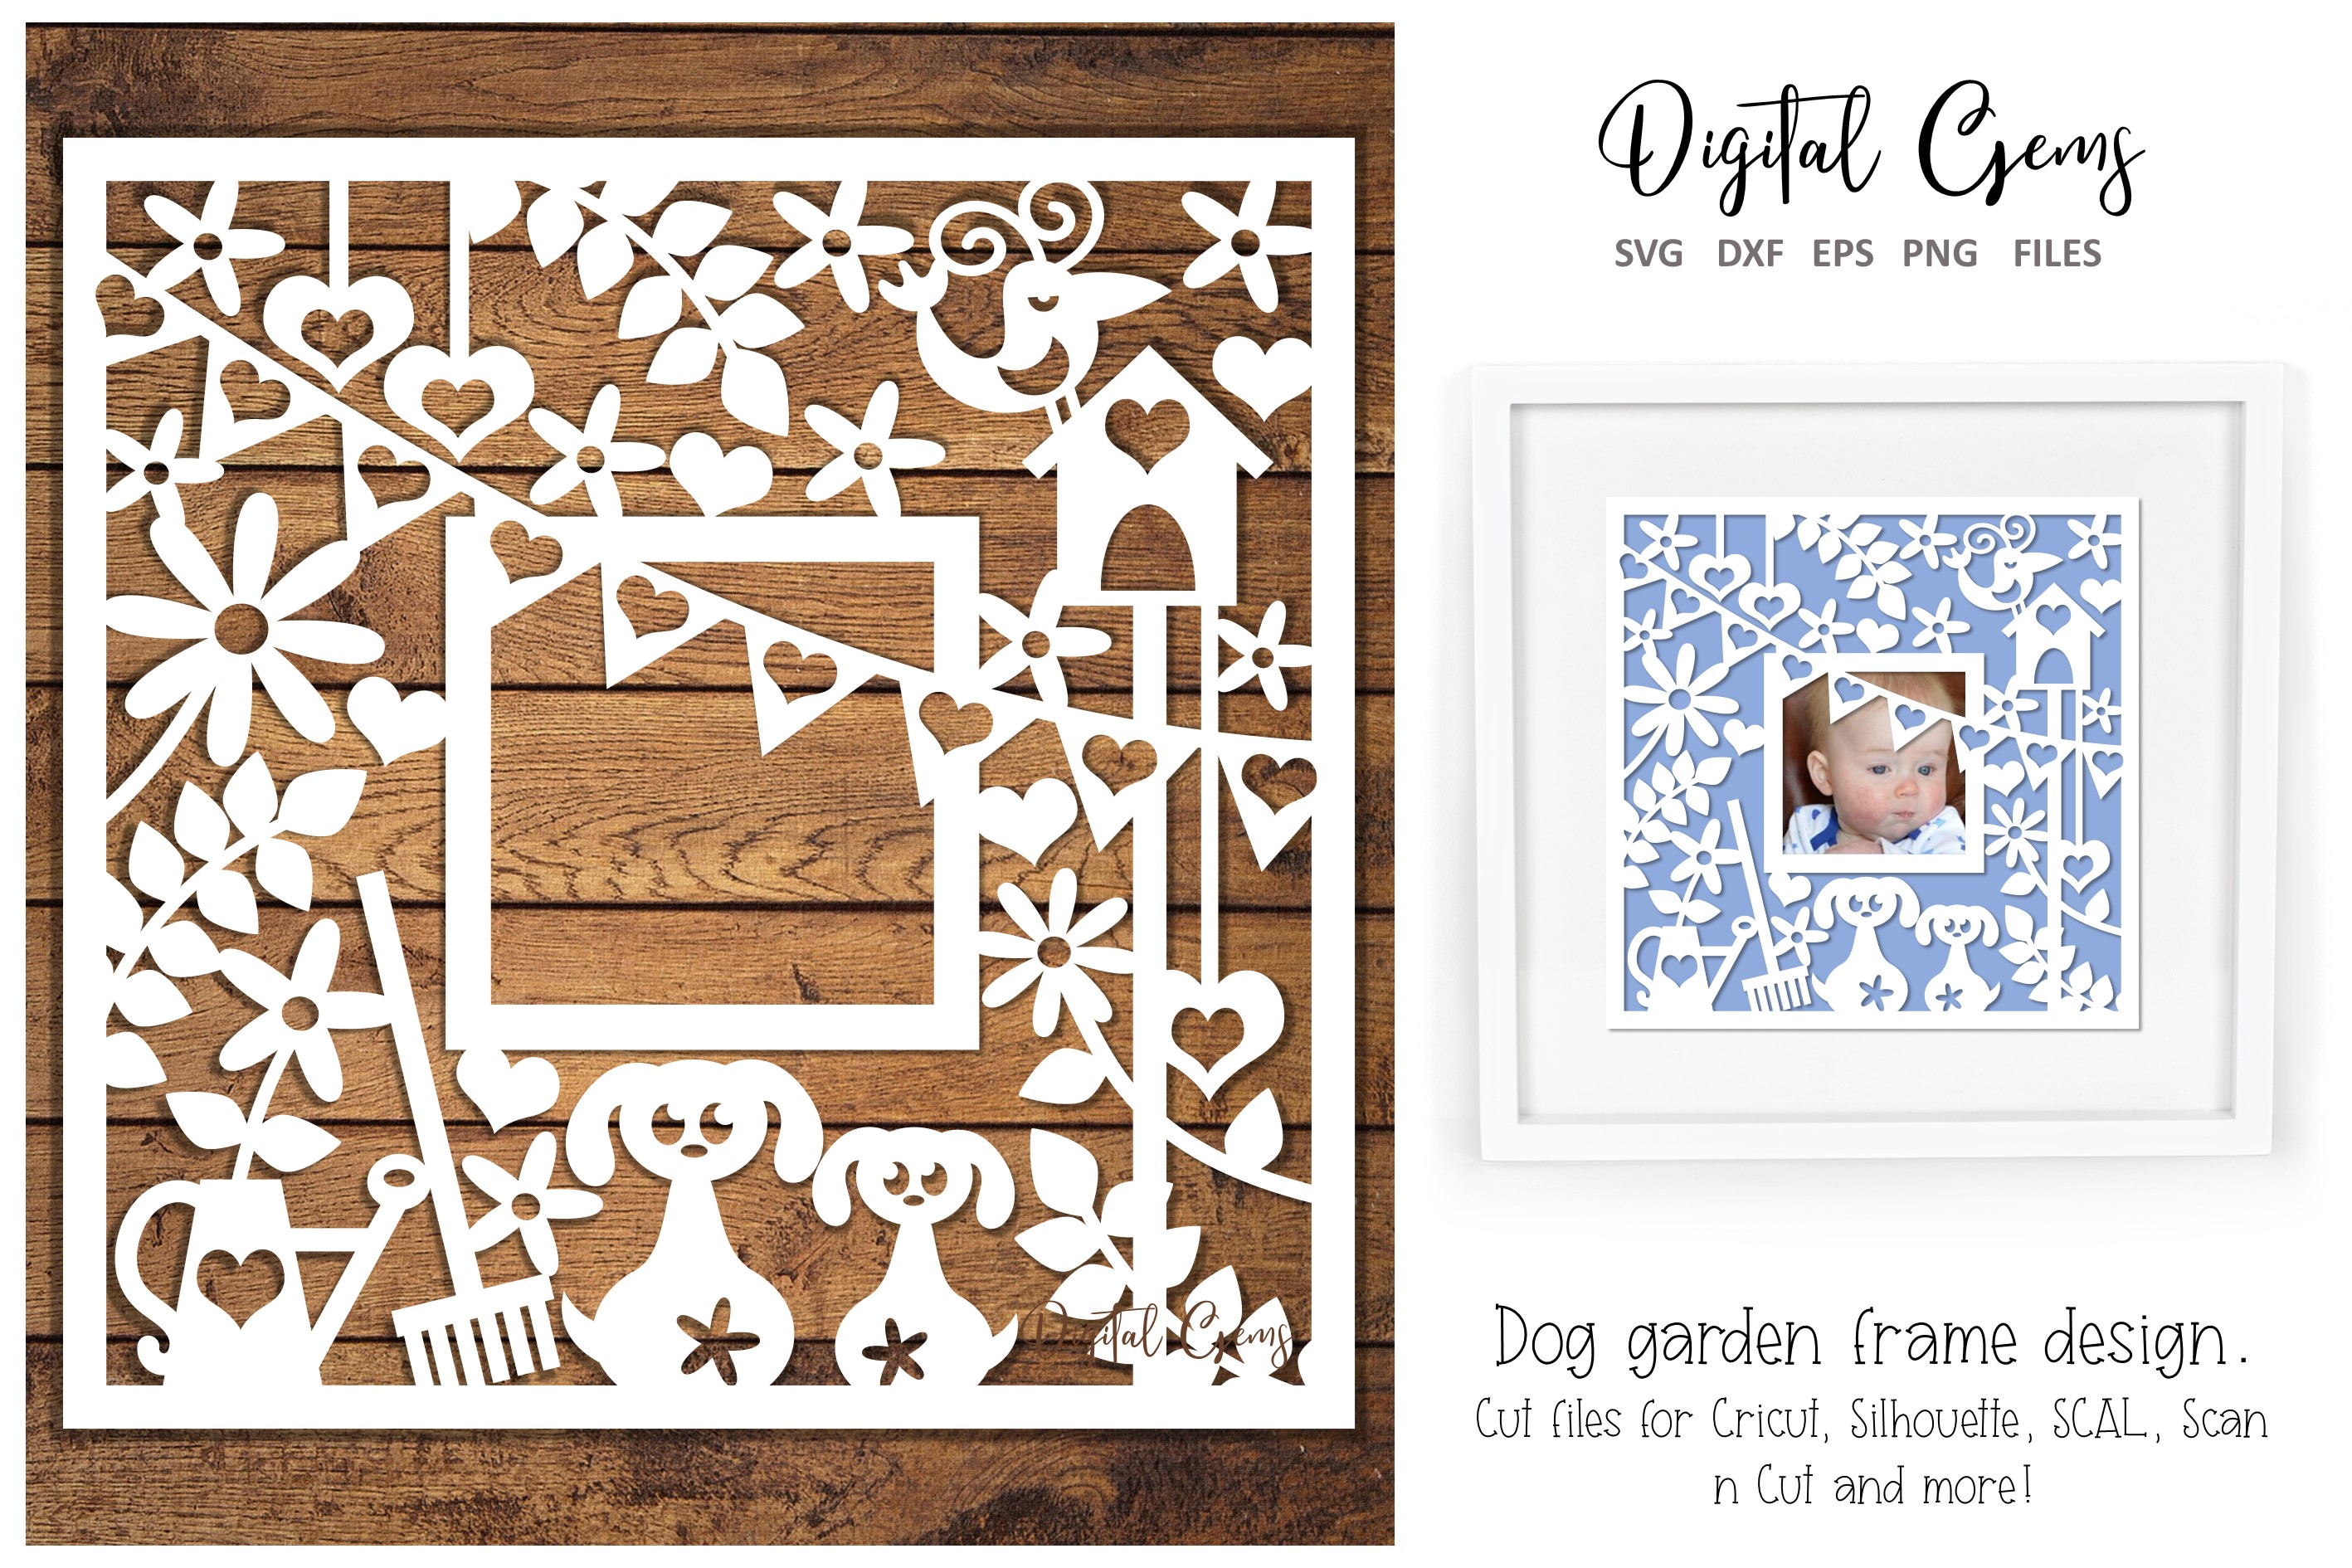 Download Free Dog Gardening Frame Design Graphic By Digital Gems Creative for Cricut Explore, Silhouette and other cutting machines.